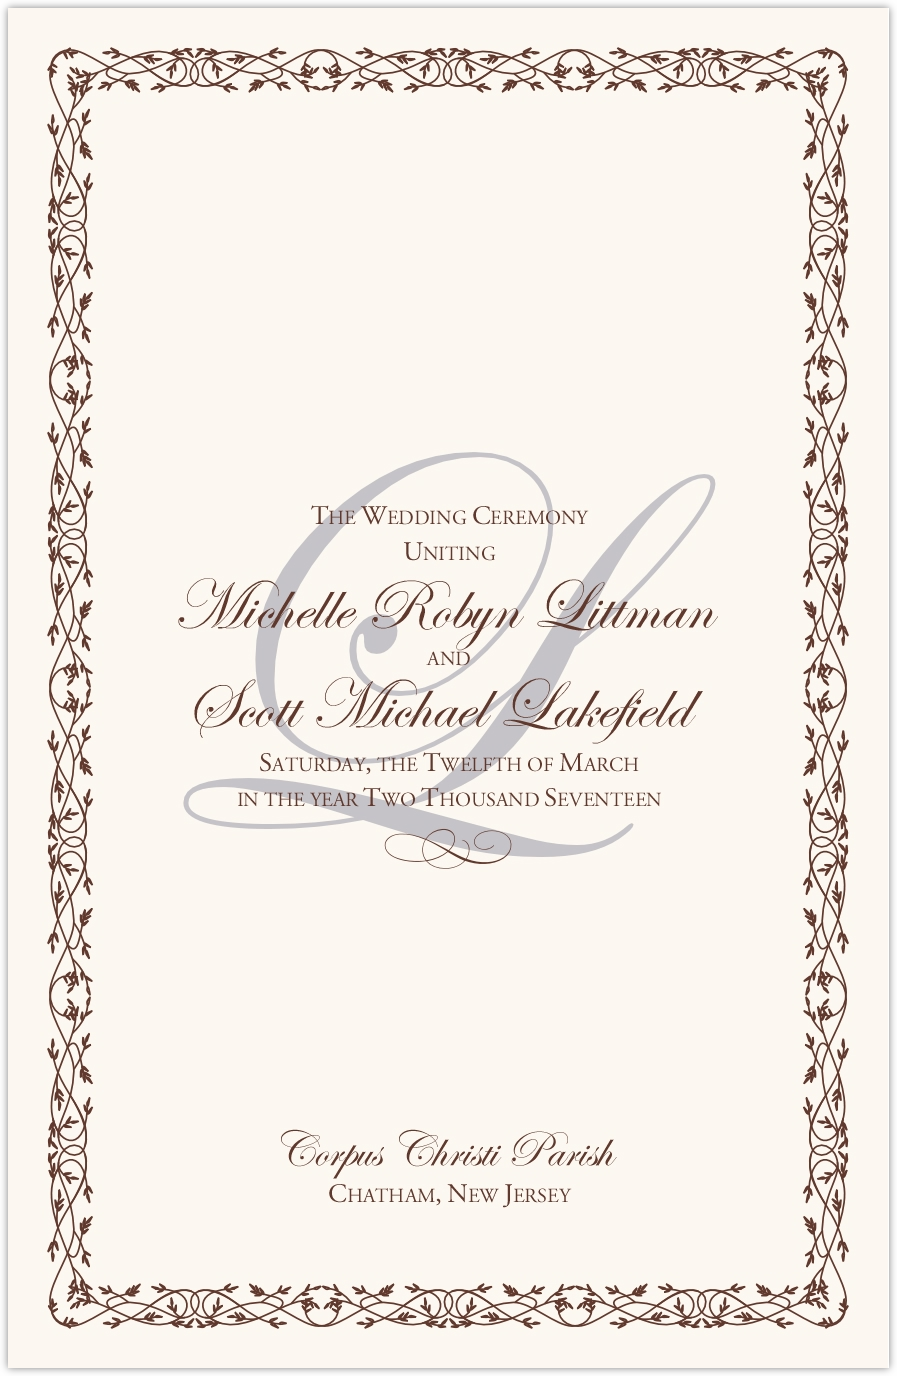 Edwardian Watermark Wedding Programs